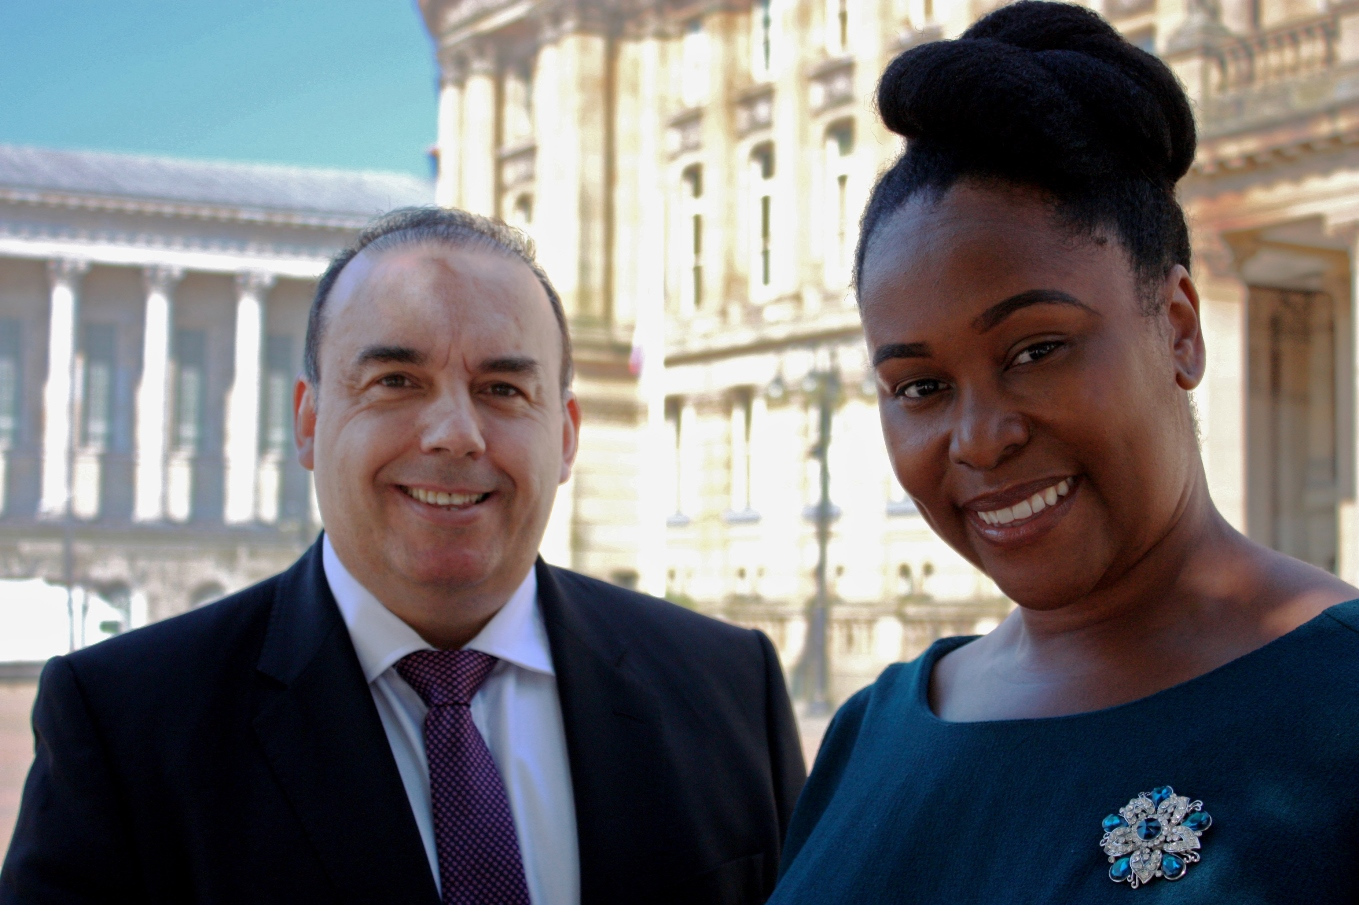 Dean Parnell and Jade Linton Associate Sydney Mitchell Promotion